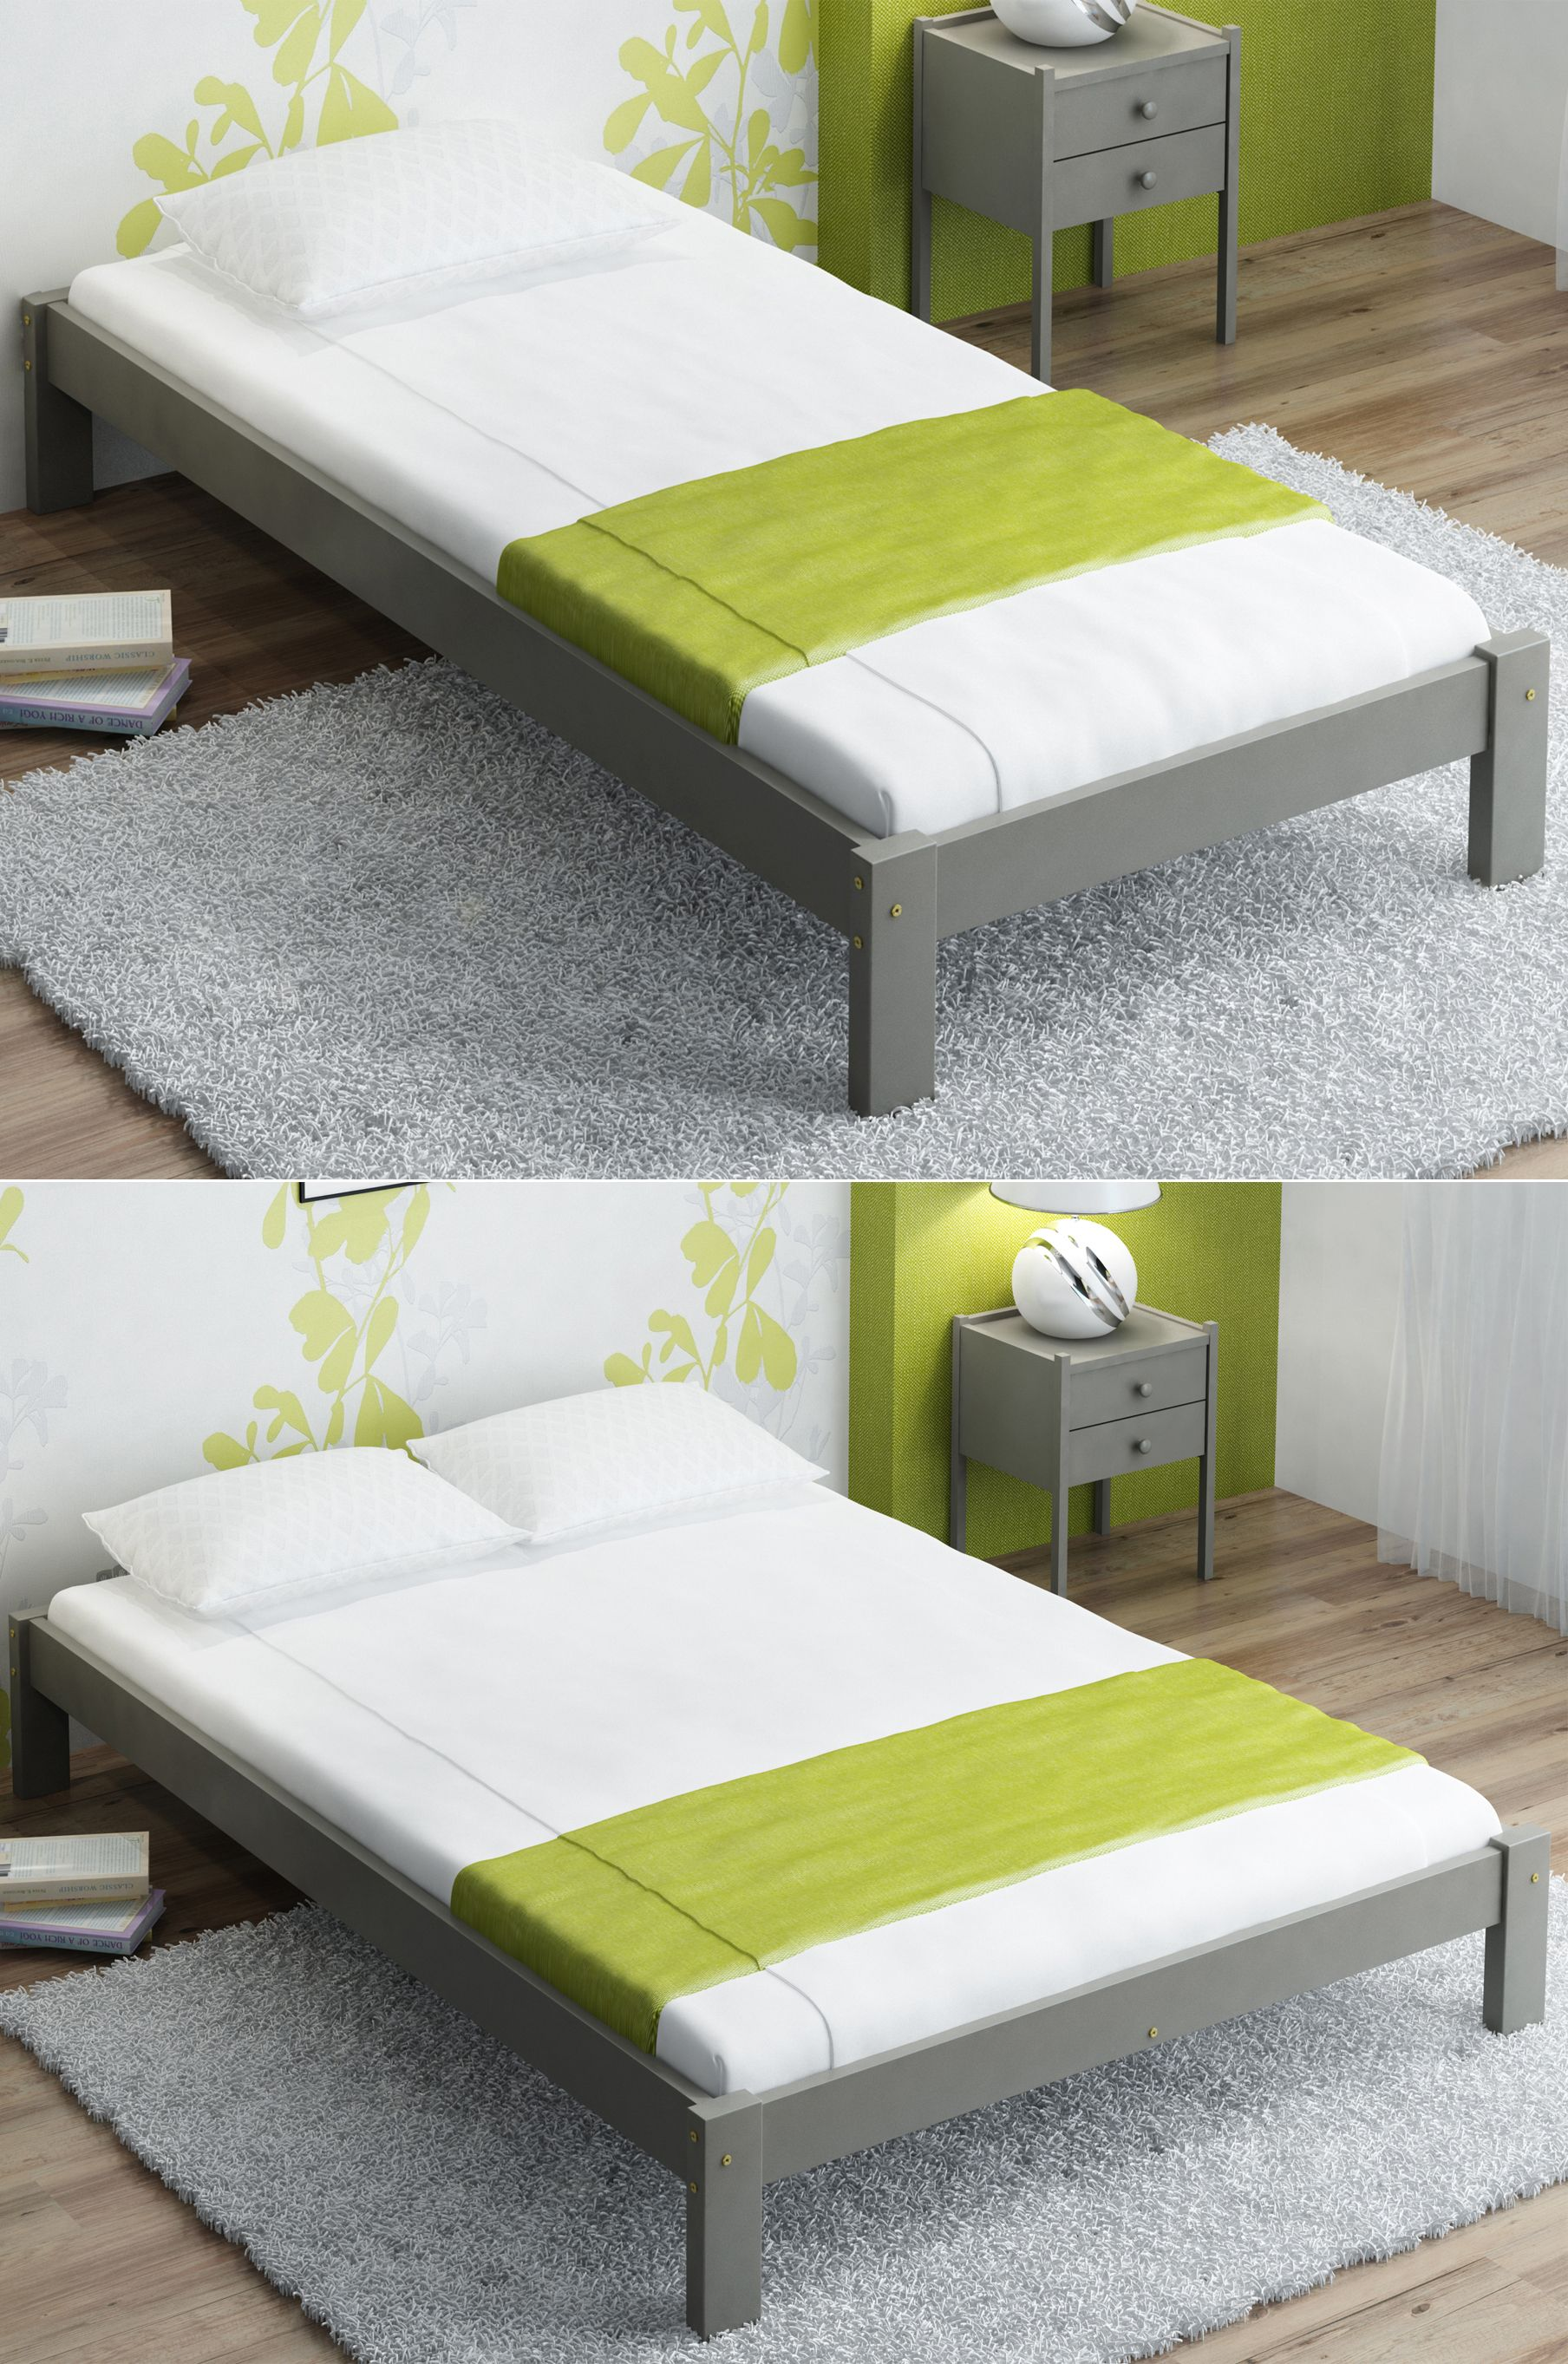 Bed Frame Without Headboard Is A Great Solution For Small Or